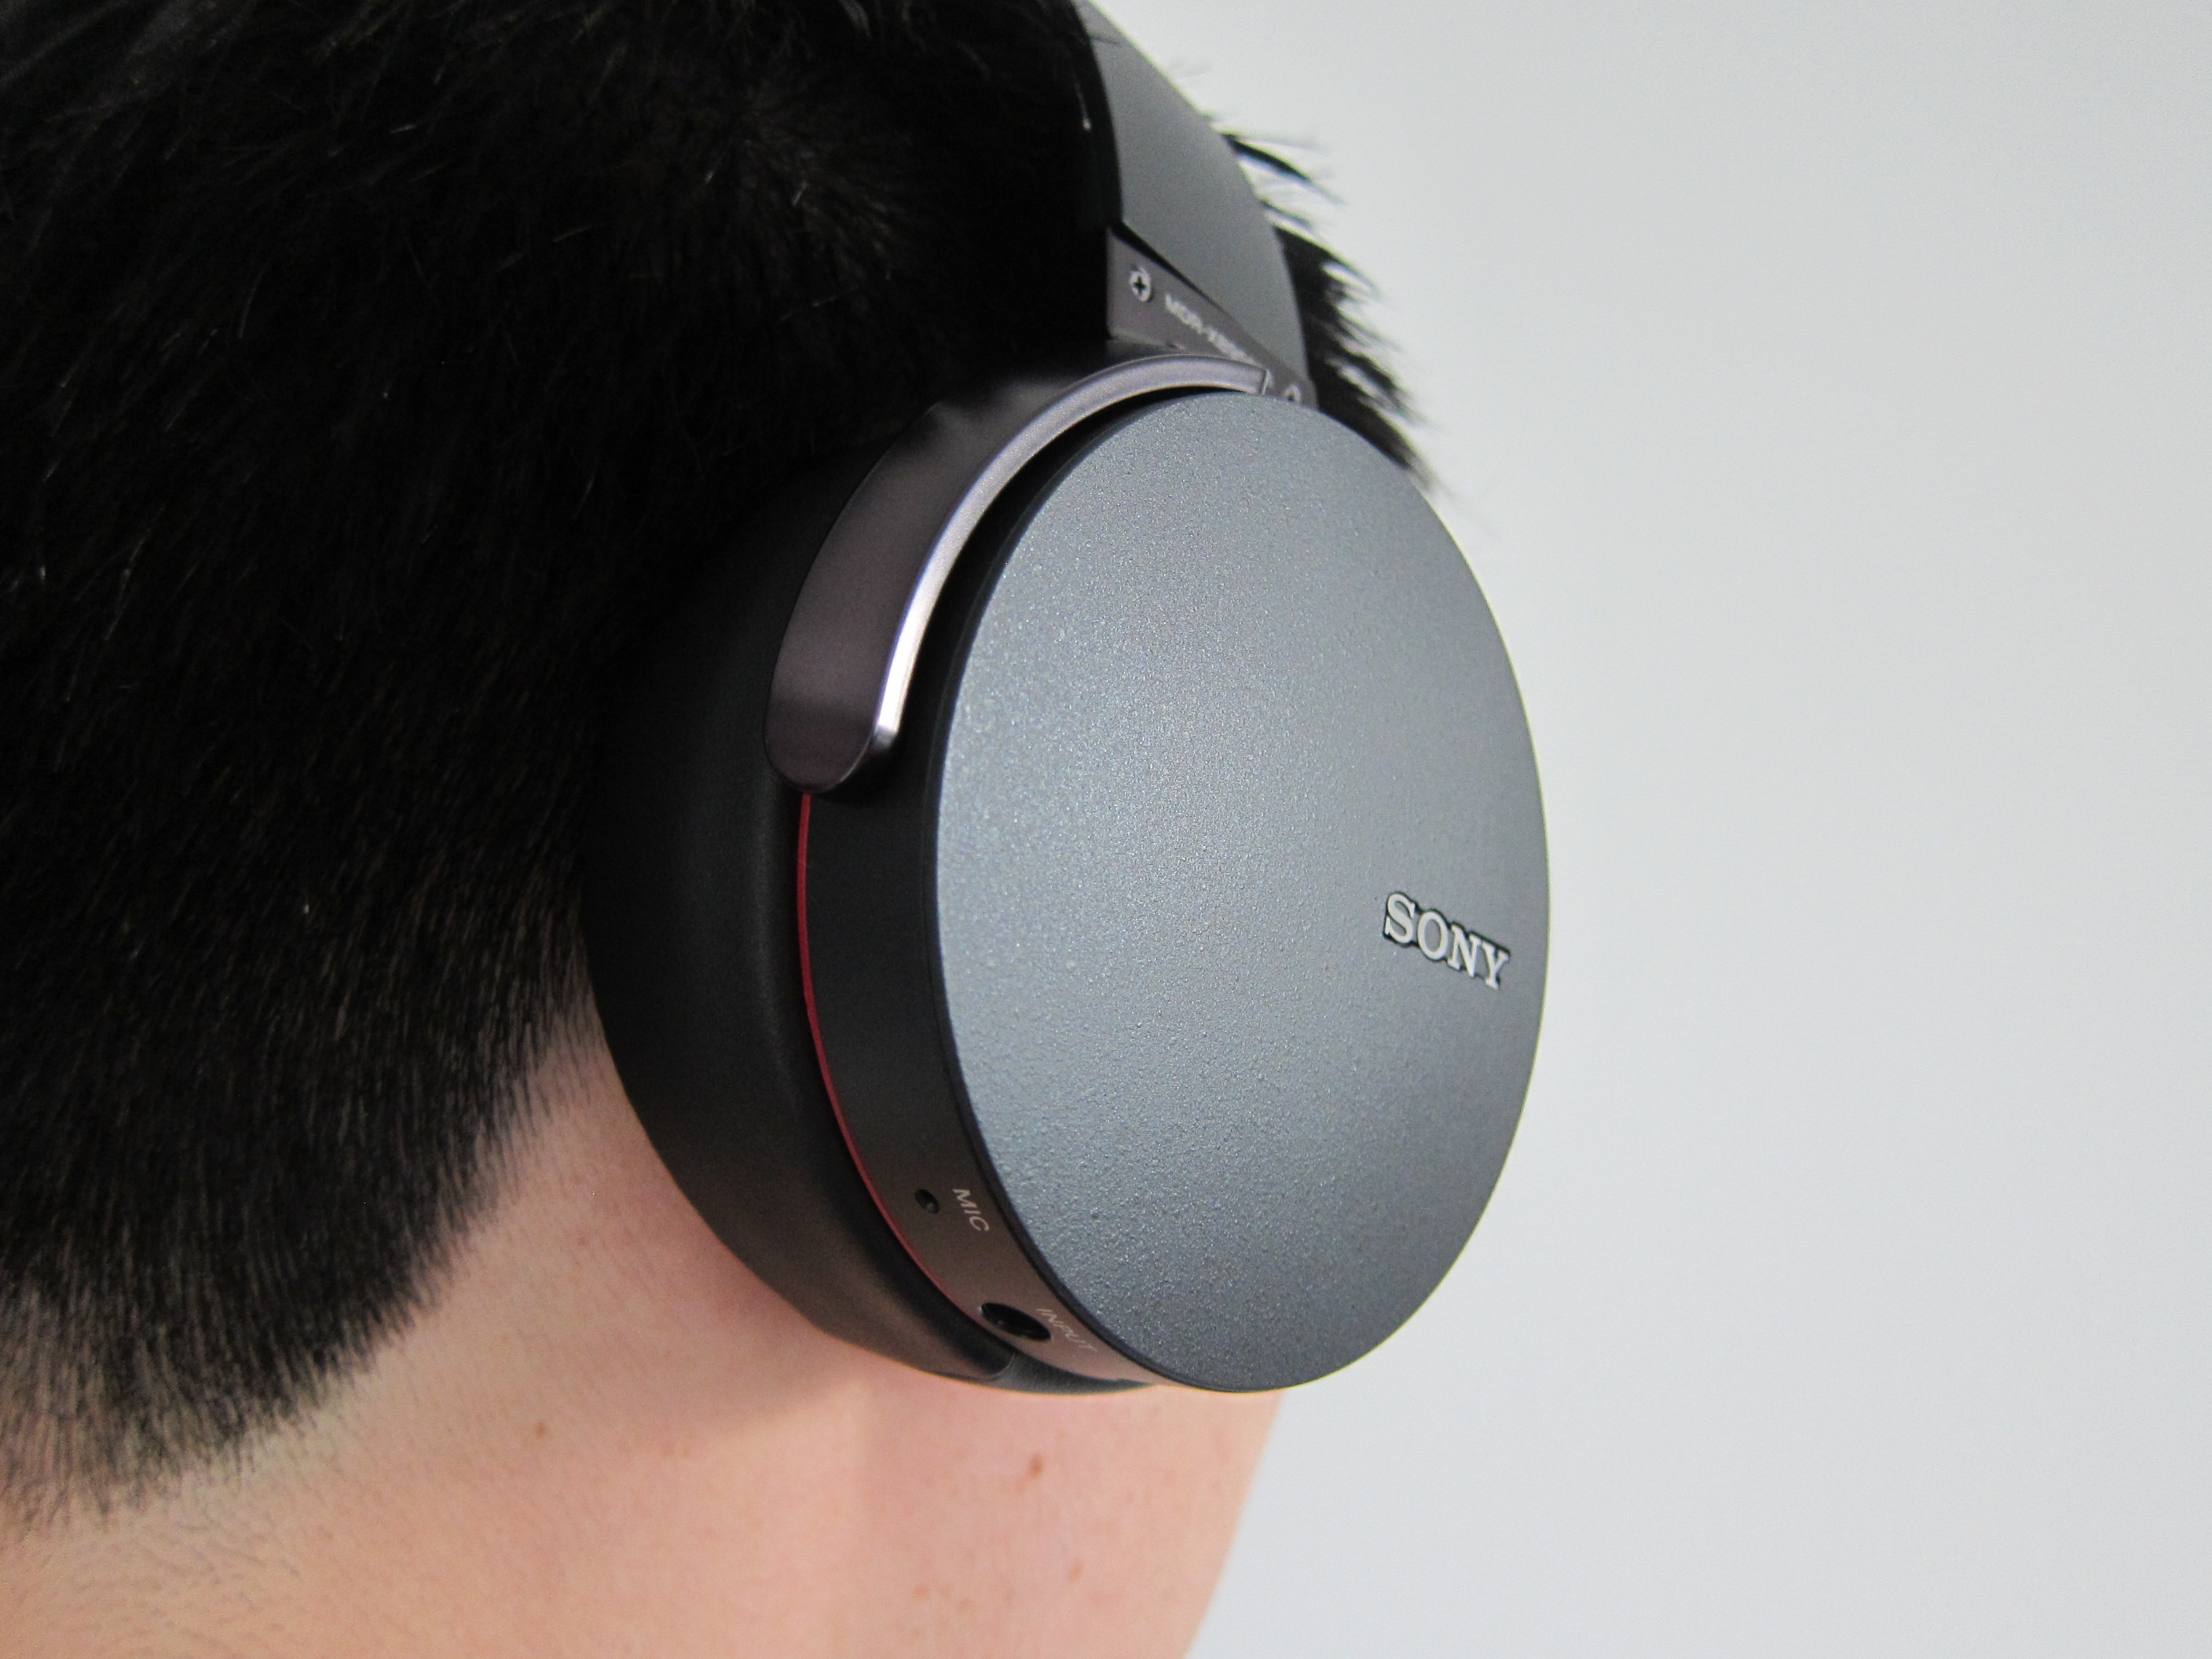 sony extra bass wireless headphones how to connect to laptop